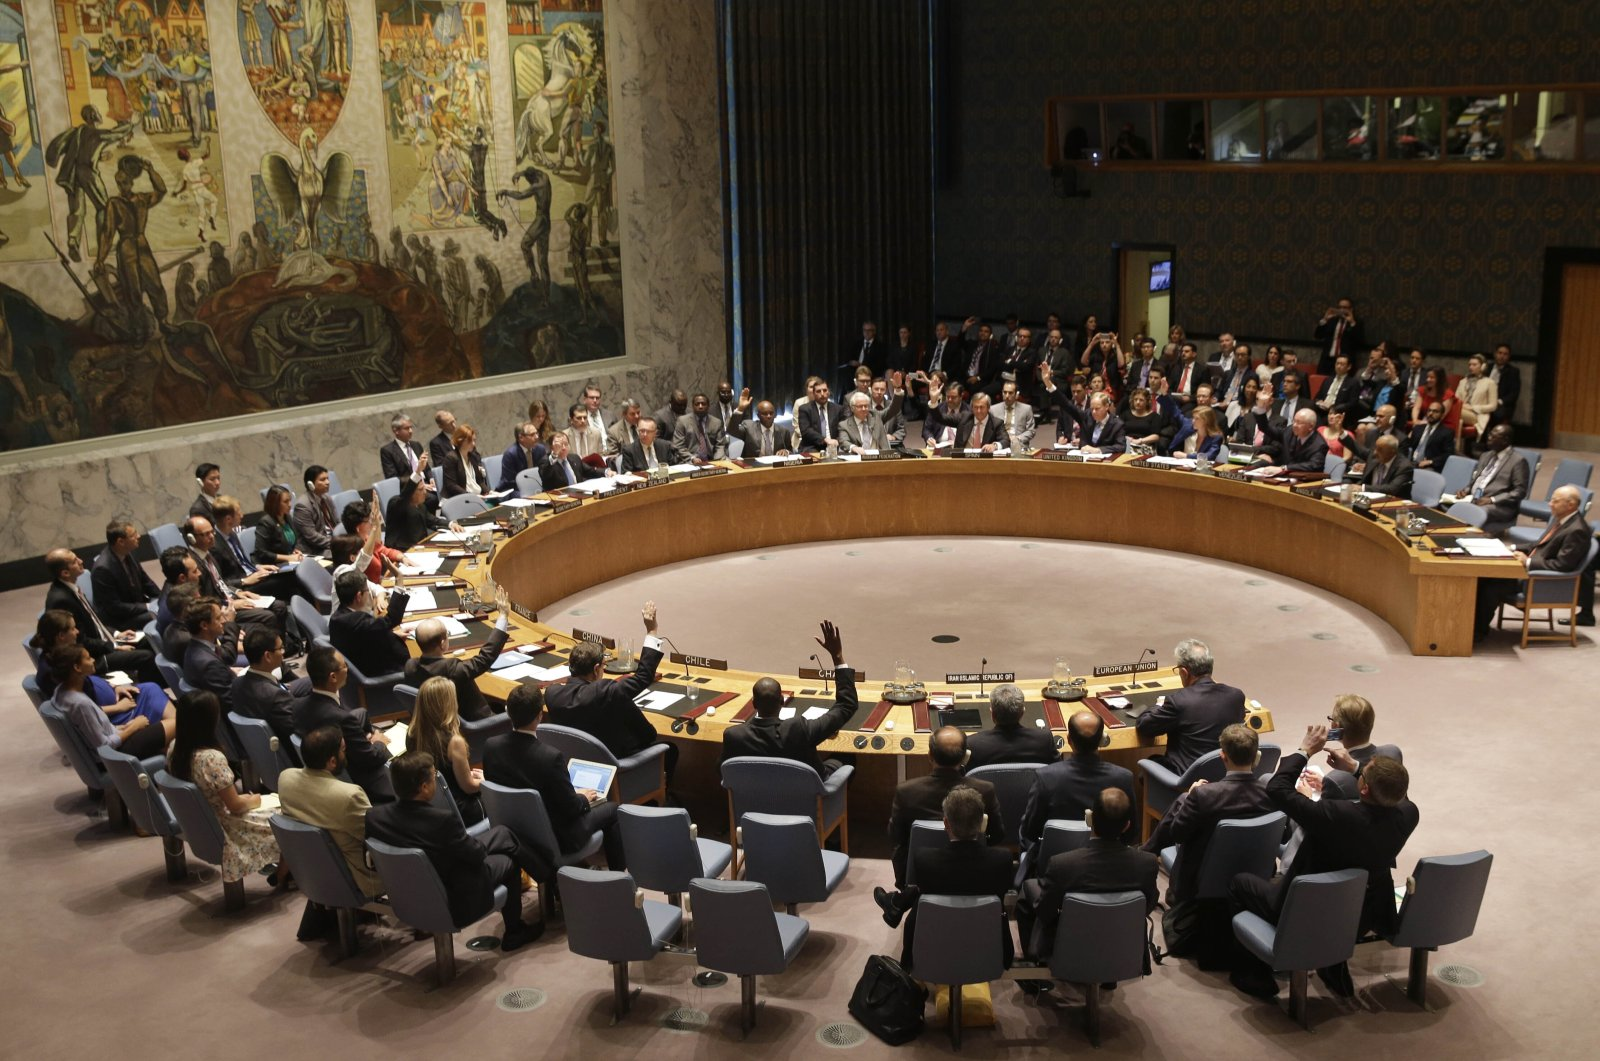 Members of the Security Council vote at United Nations headquarters on the landmark nuclear deal between Iran and 6 world powers, New York City, New York, U.S. on July 20, 2015. (AP Photo)